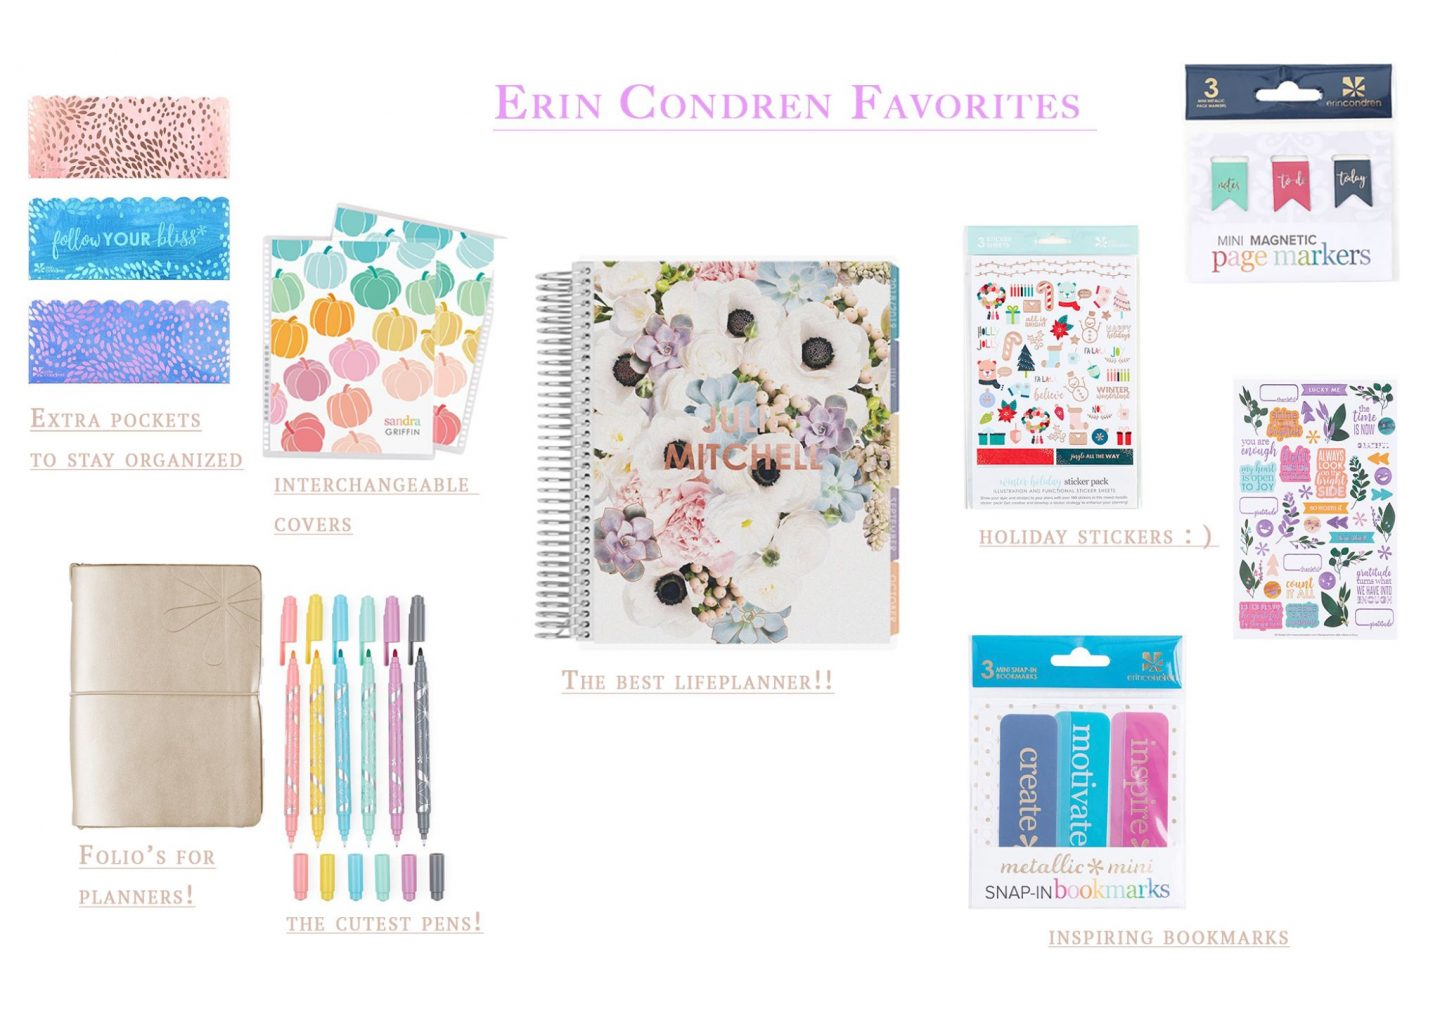 Erin Condren Sale!